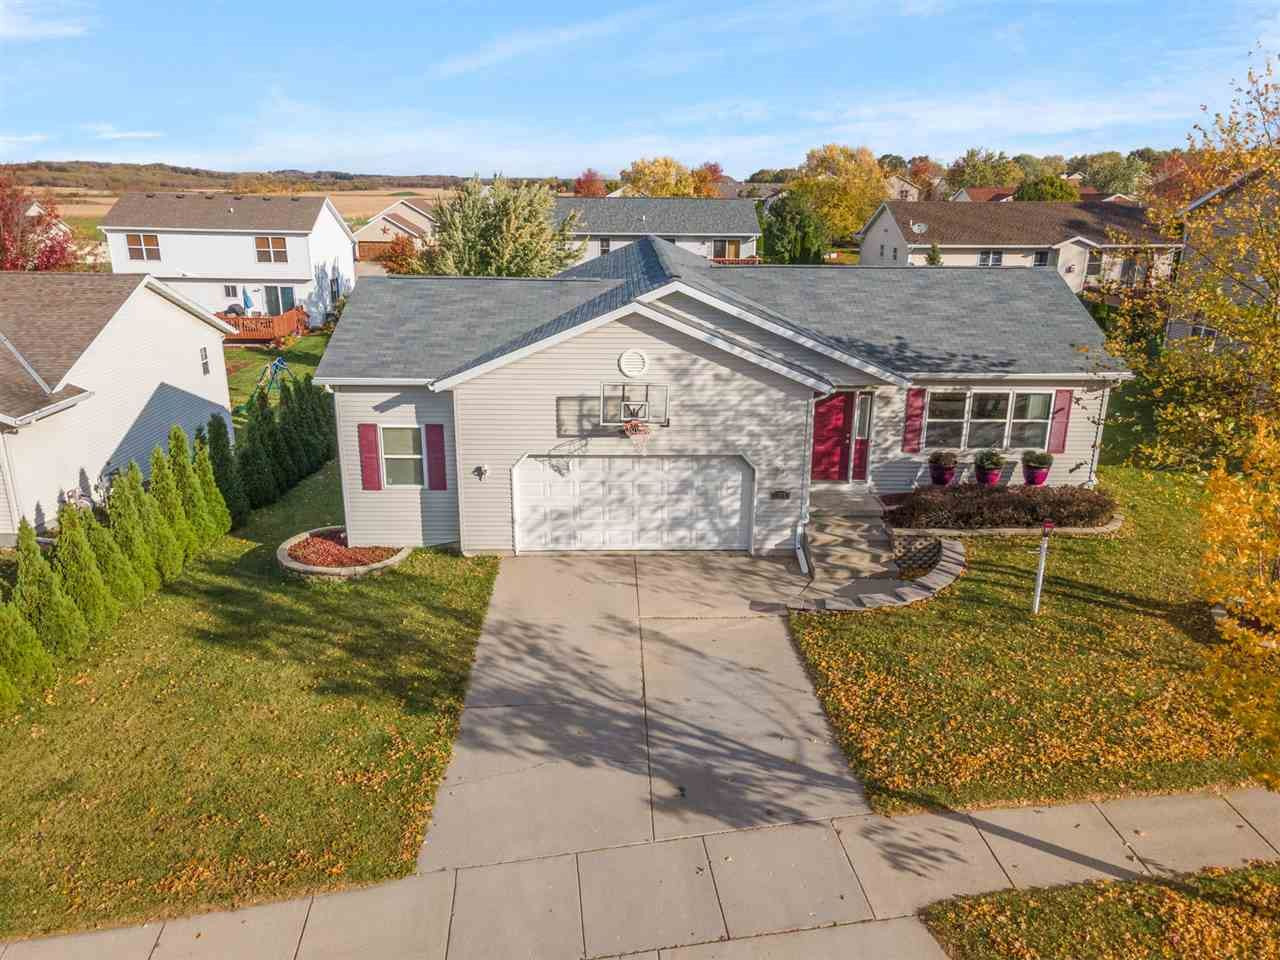 1264 W Bloomingfield Dr, Whitewater, WI 53190 - #: 1895738